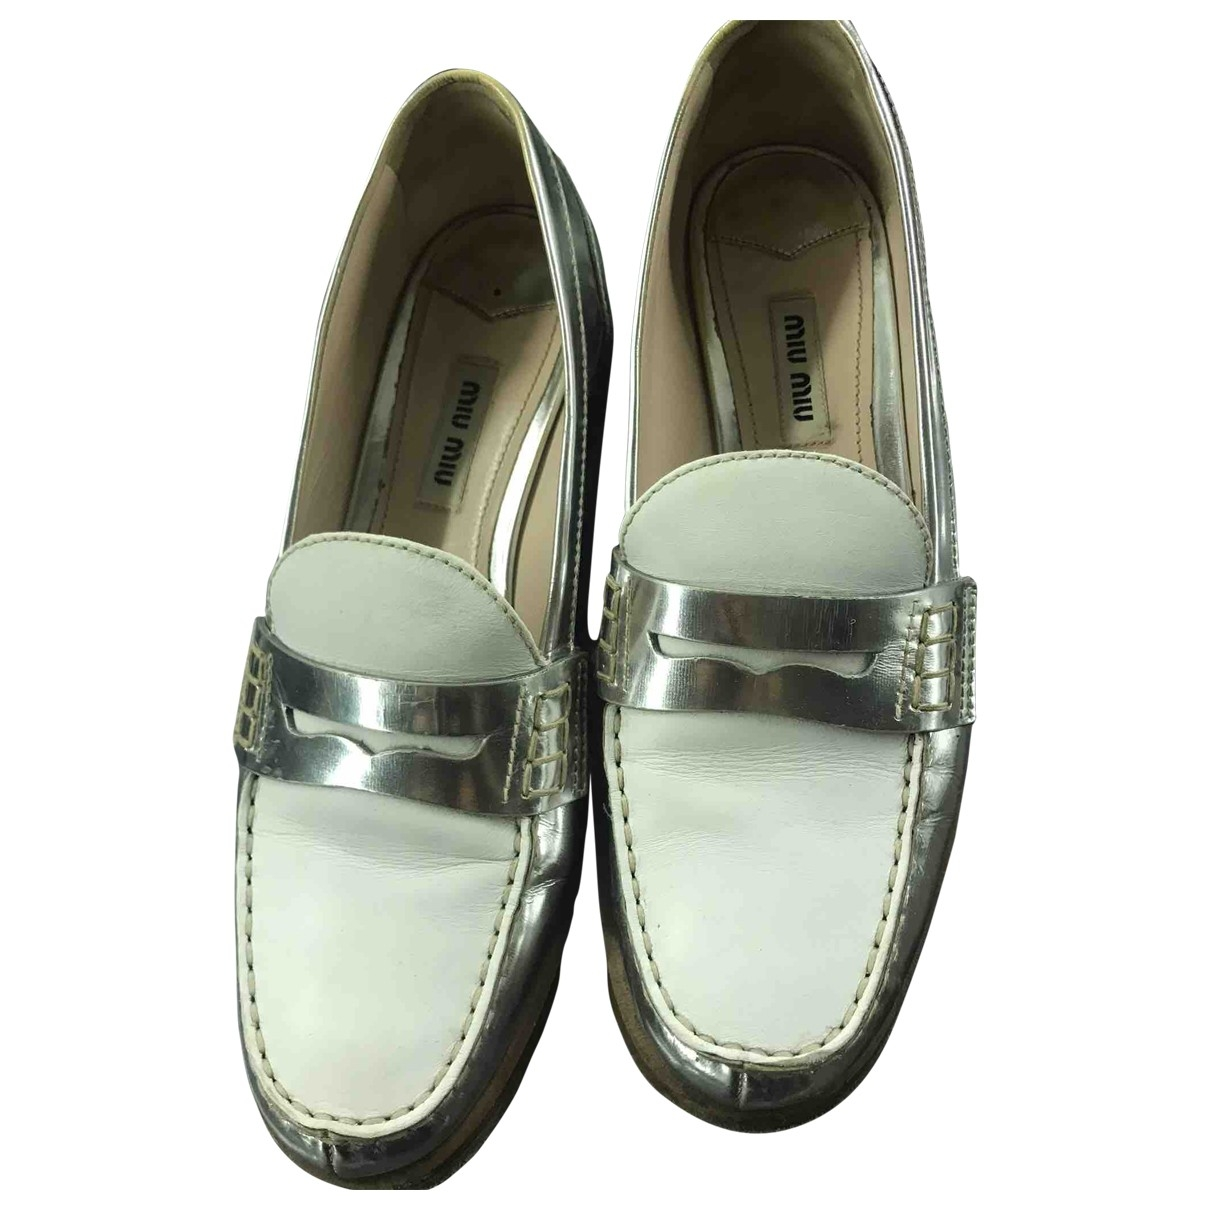 Miu Miu \N Silver Leather Flats for Women 37 EU